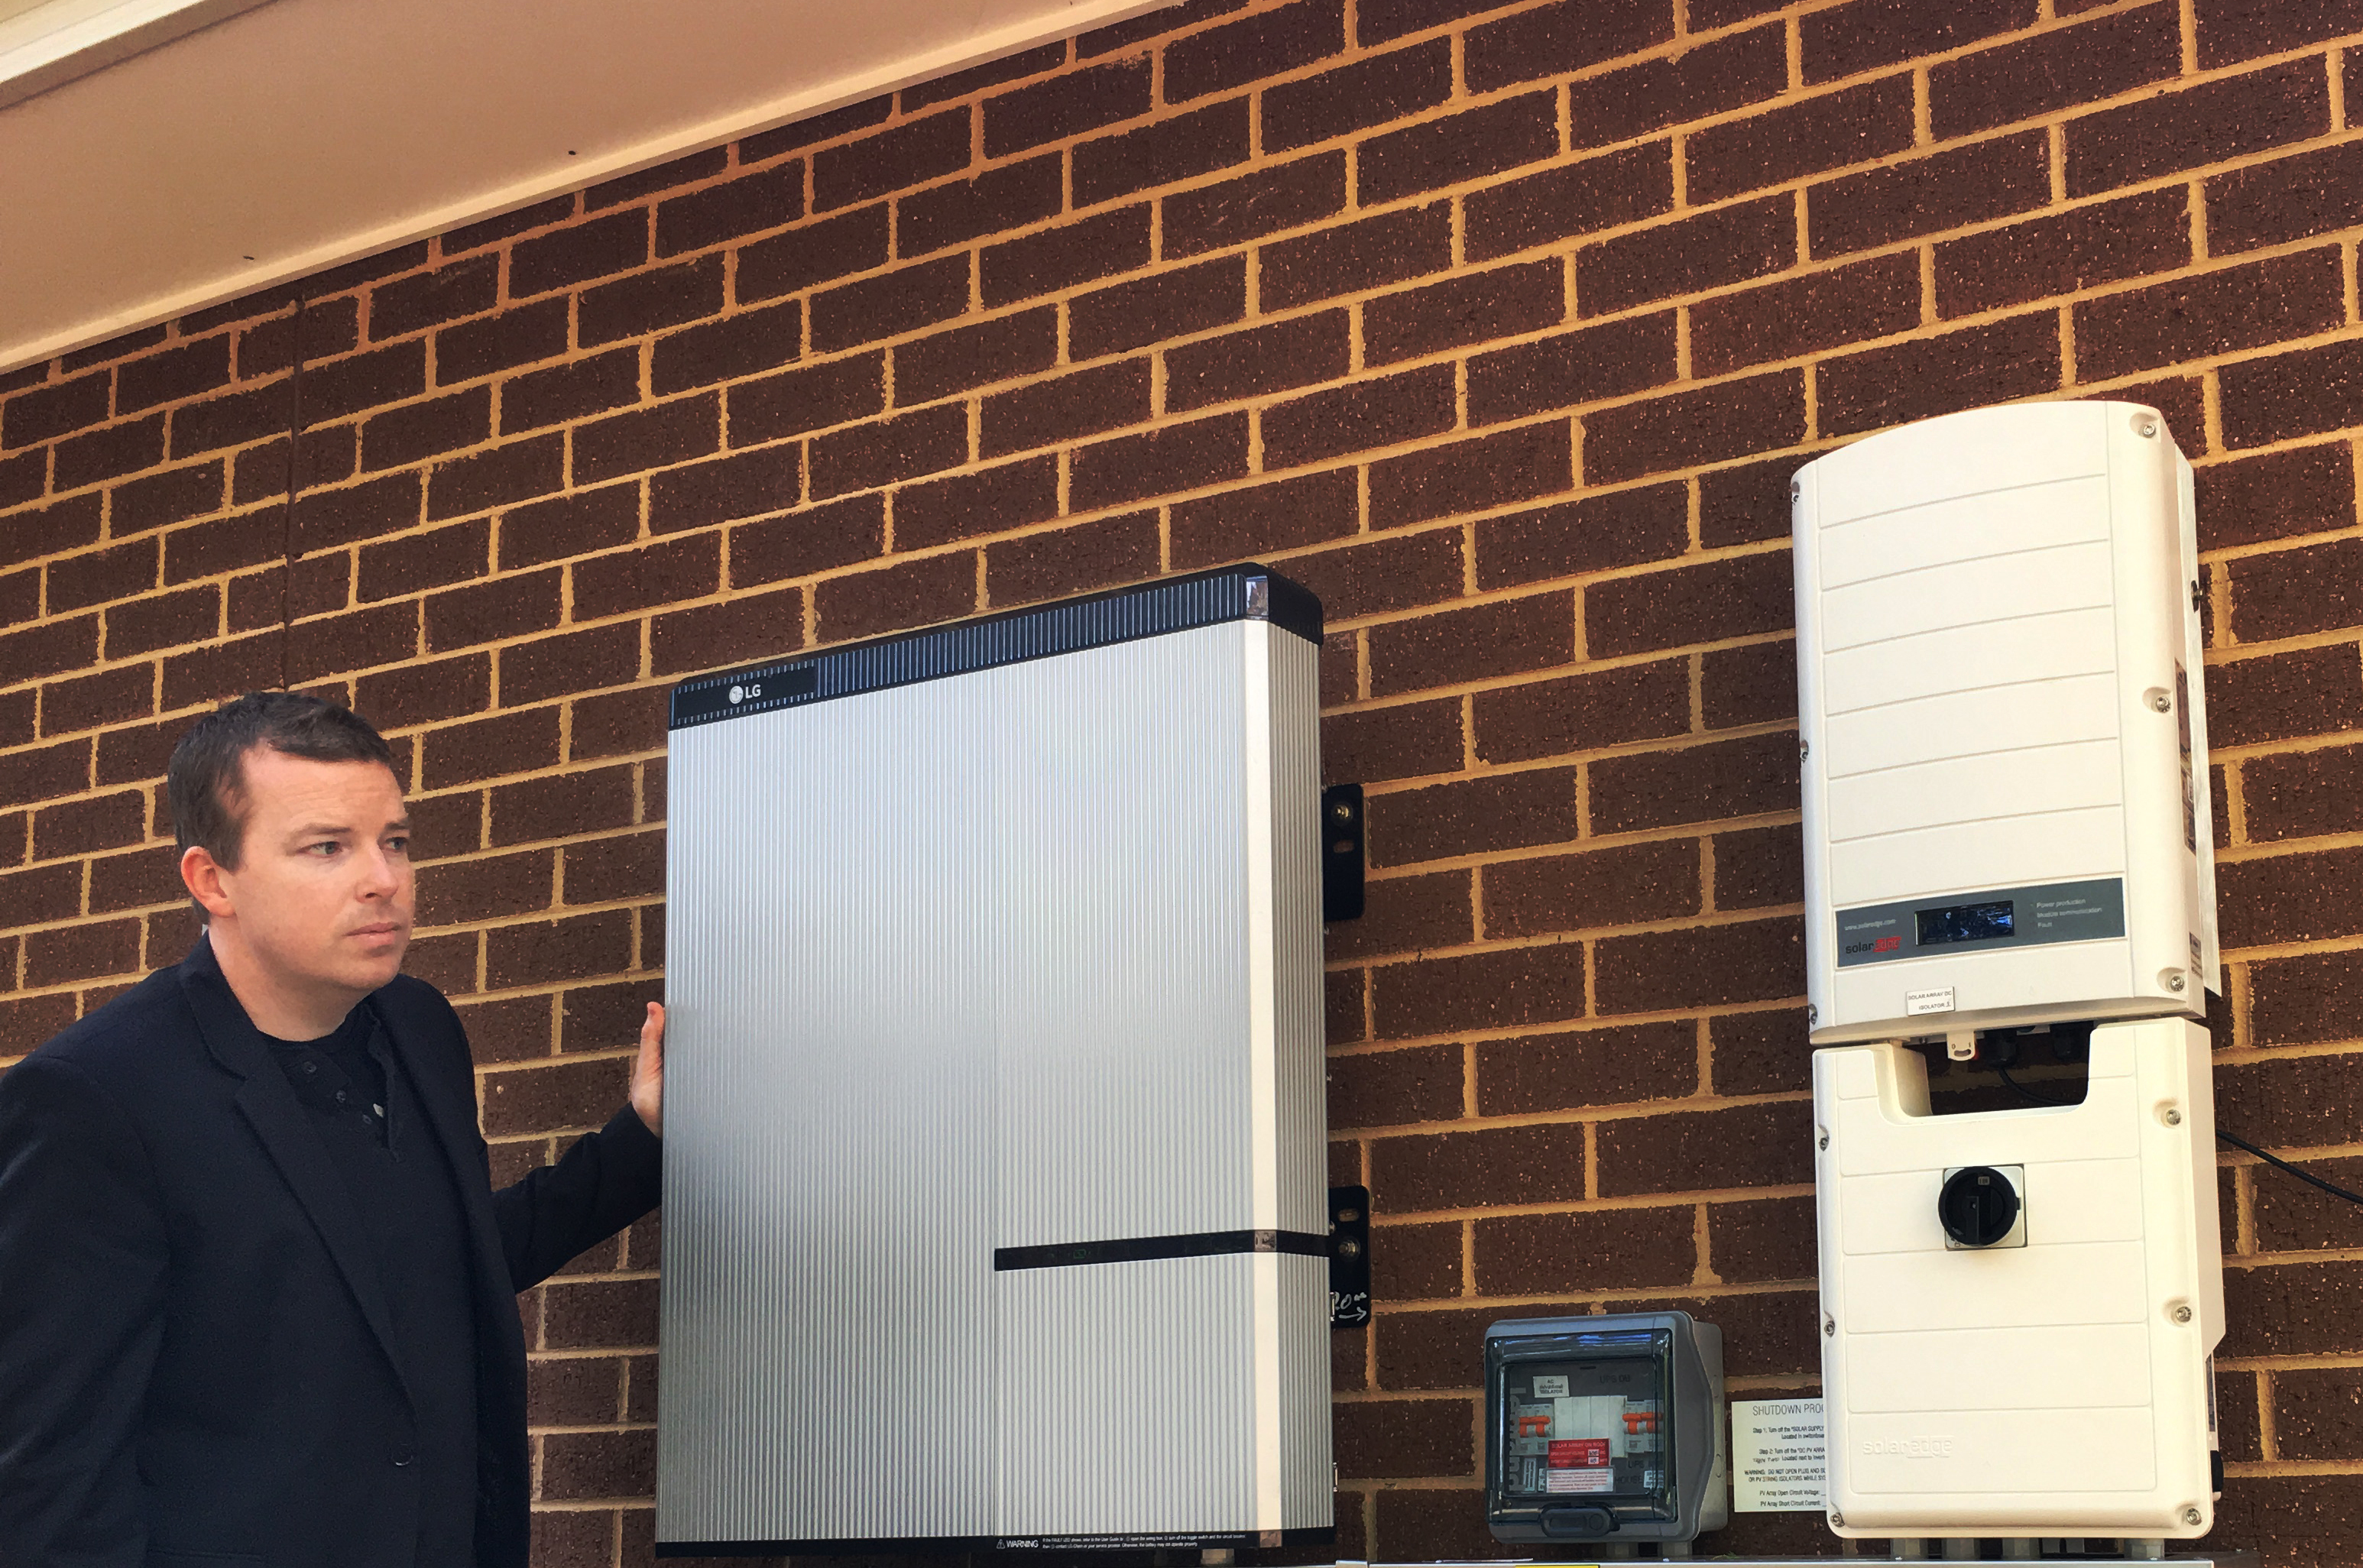 LG Chem has launched its residential battery system in the North American market with a high-voltage 400V version. This is its first from a lineup that will be available soon throughout the U.S. and Canada. (Photo: Business Wire)